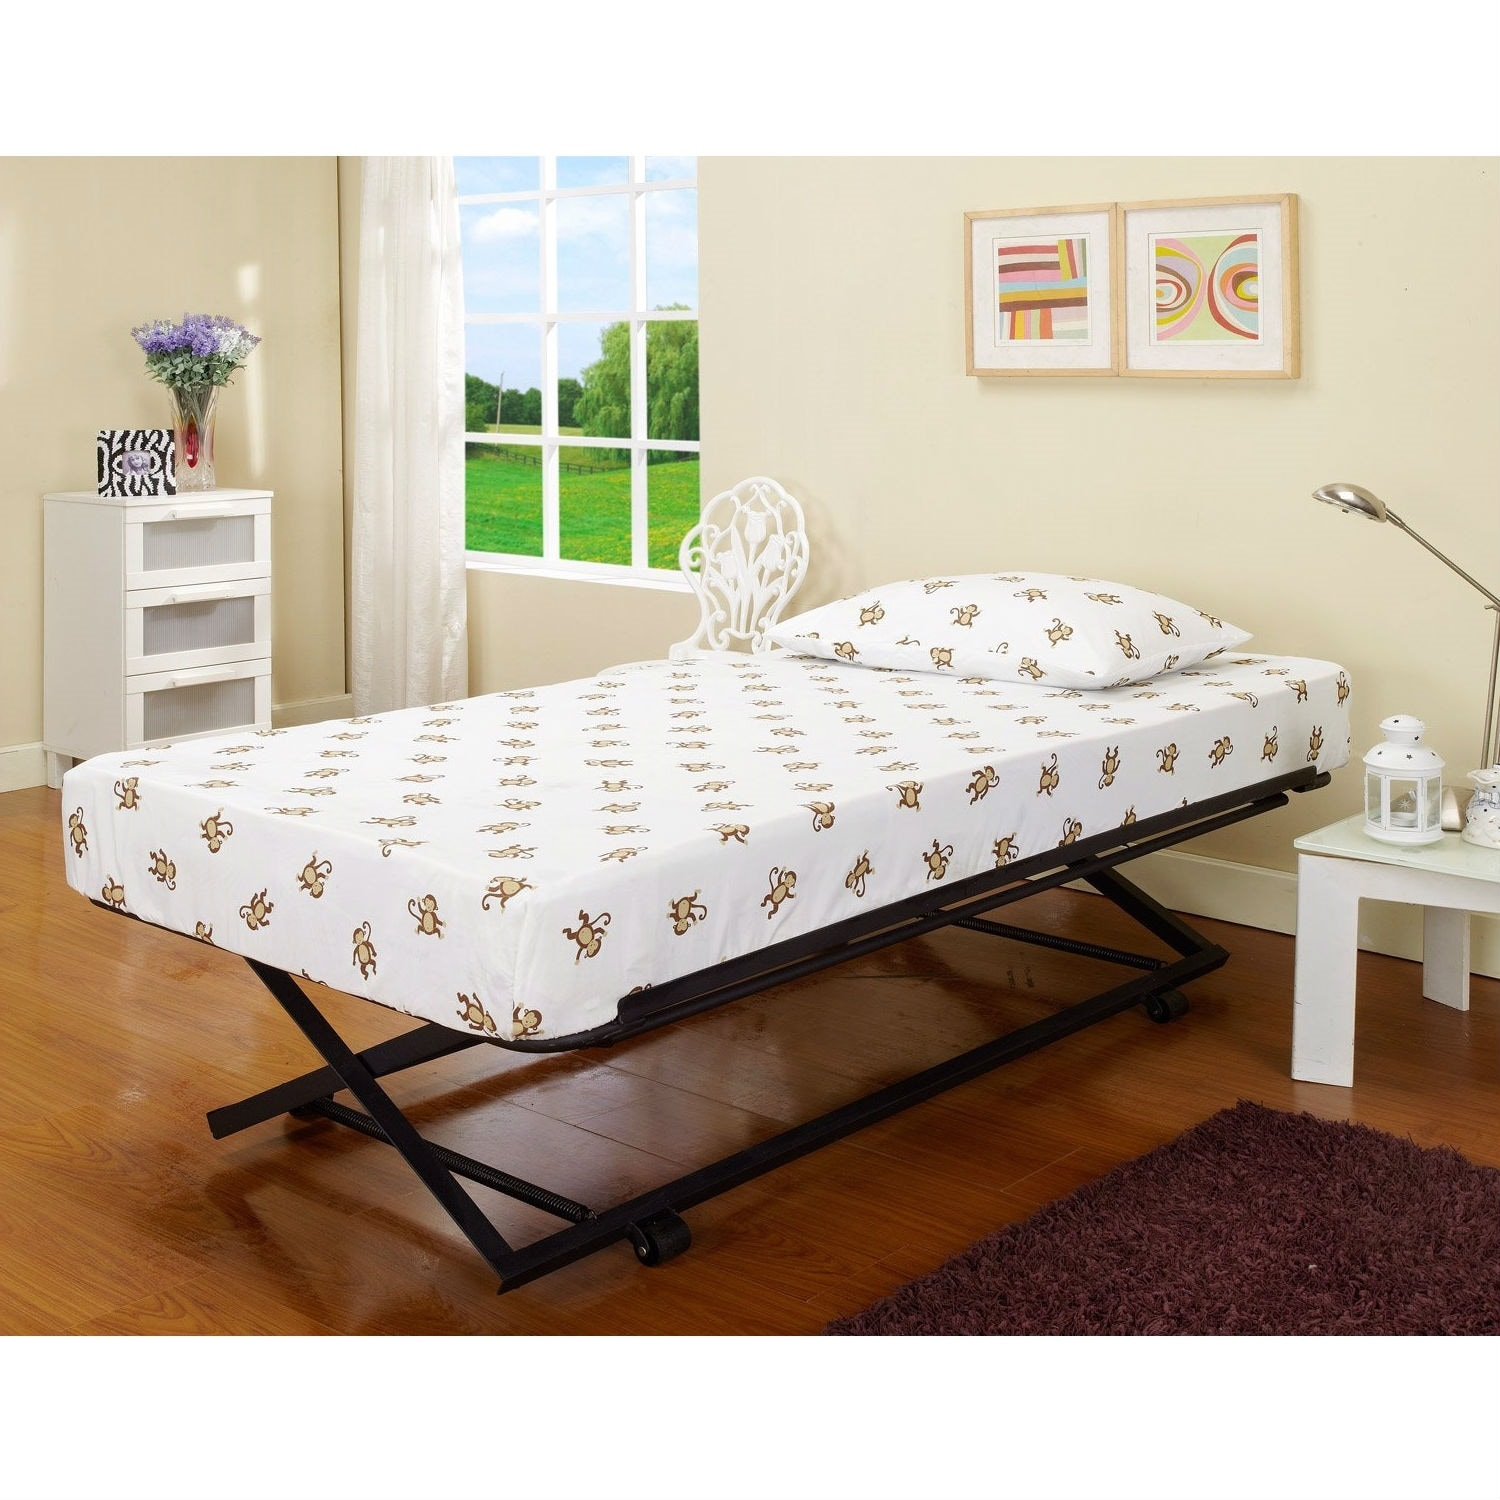 Twin Size Pop Up Trundle For Day Beds Or Guest Bed On Sale Overstock 29083985